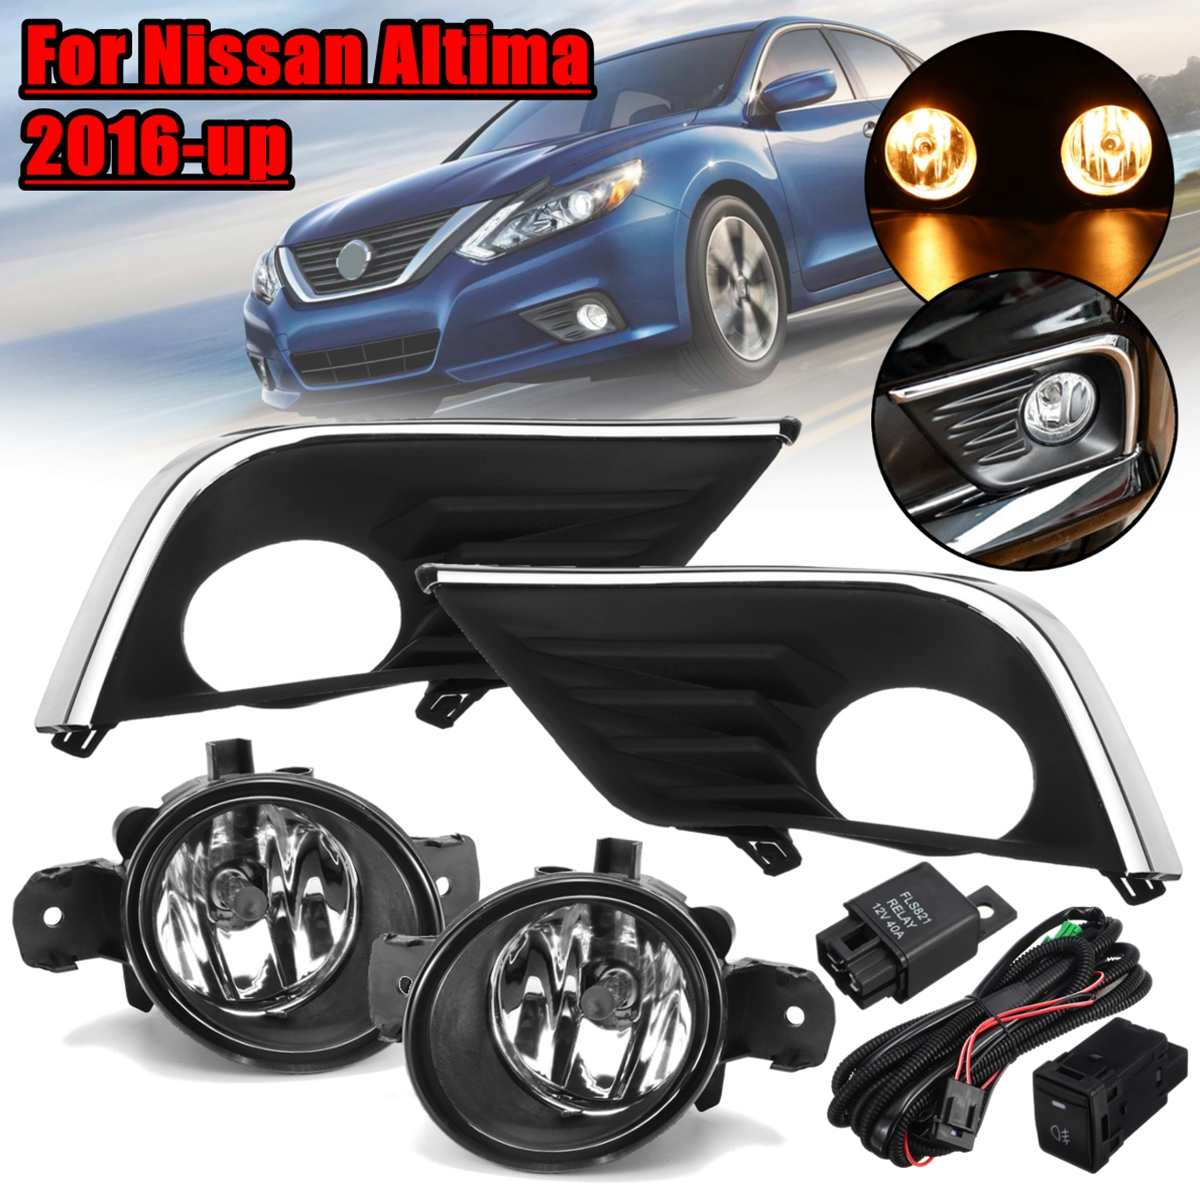 1 Pair For Nissan Altima 2016 2017 2018 12V 55W H11 Car Front Fog Lights And Cover With Wire Switch Lamp Cover Frame Replacement